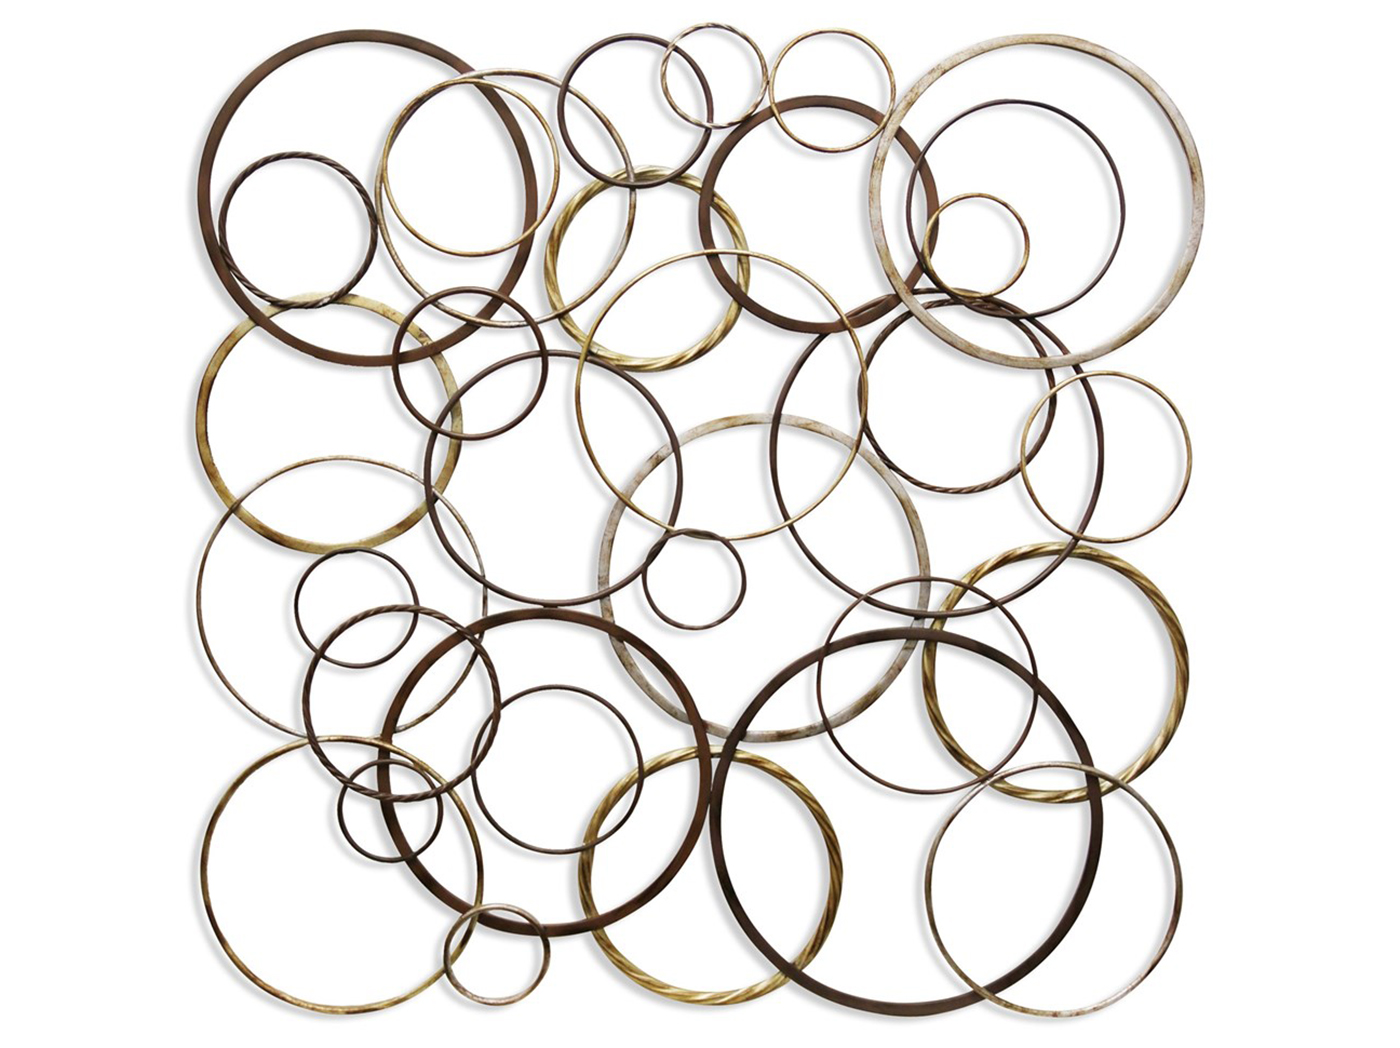 "Bronze, Gold, and Silver Rings Metal Wall Sculpture 39""W x 39""H"